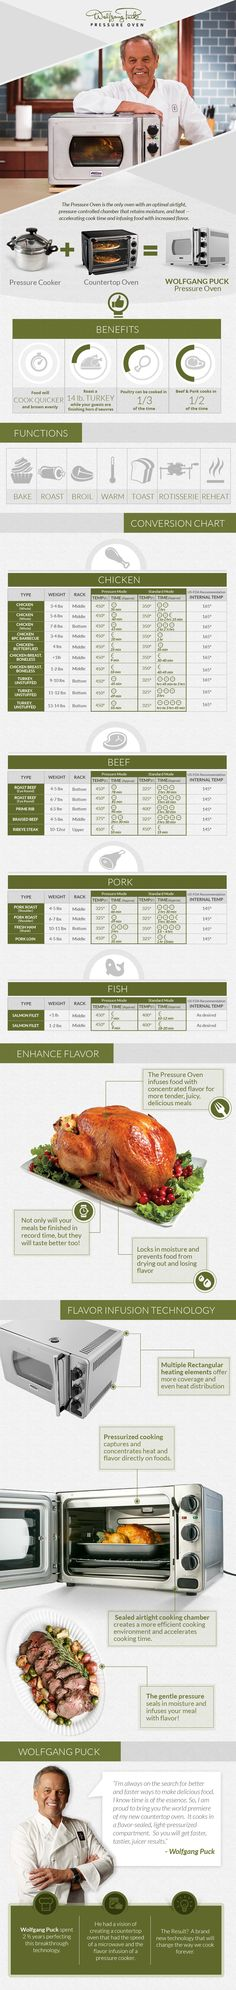 Wolfgang Puck Pressure Oven - Infographic